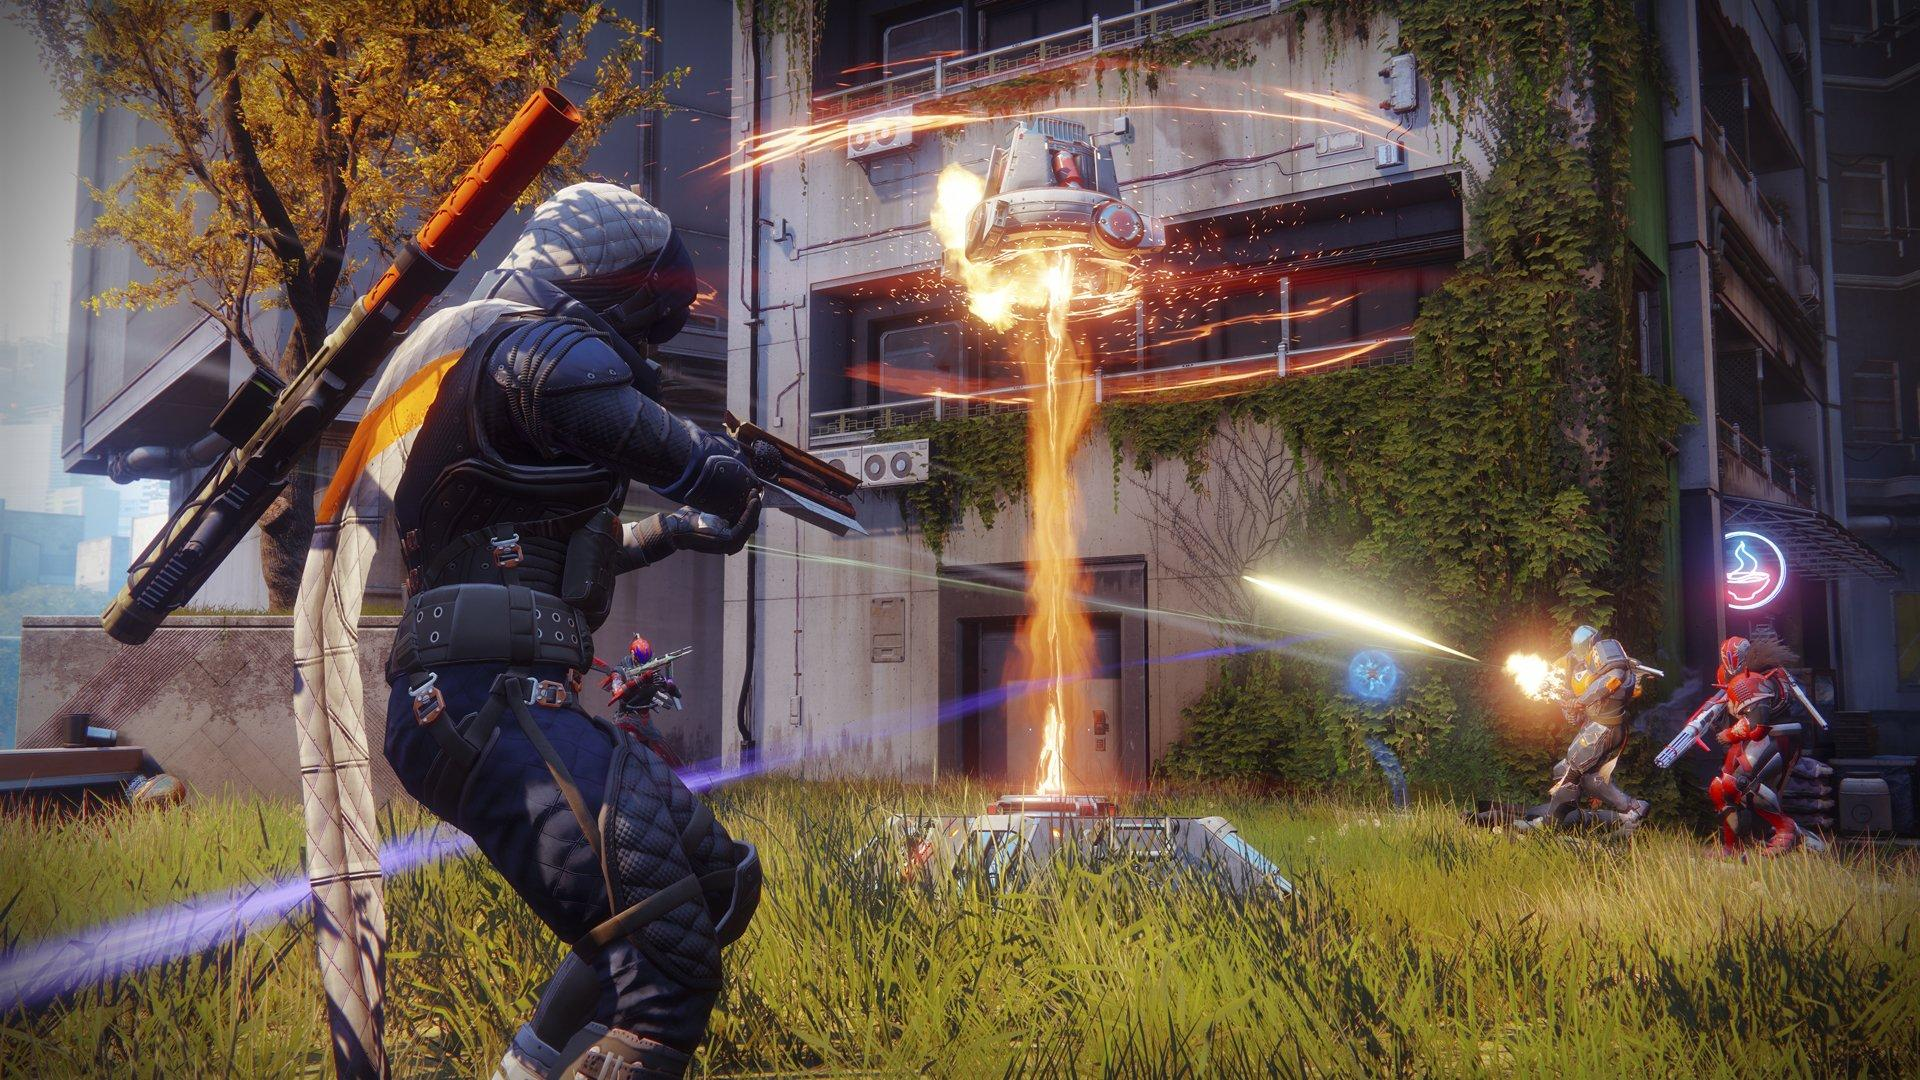 Destiny 2 shown off at last and single player looks unbelievable